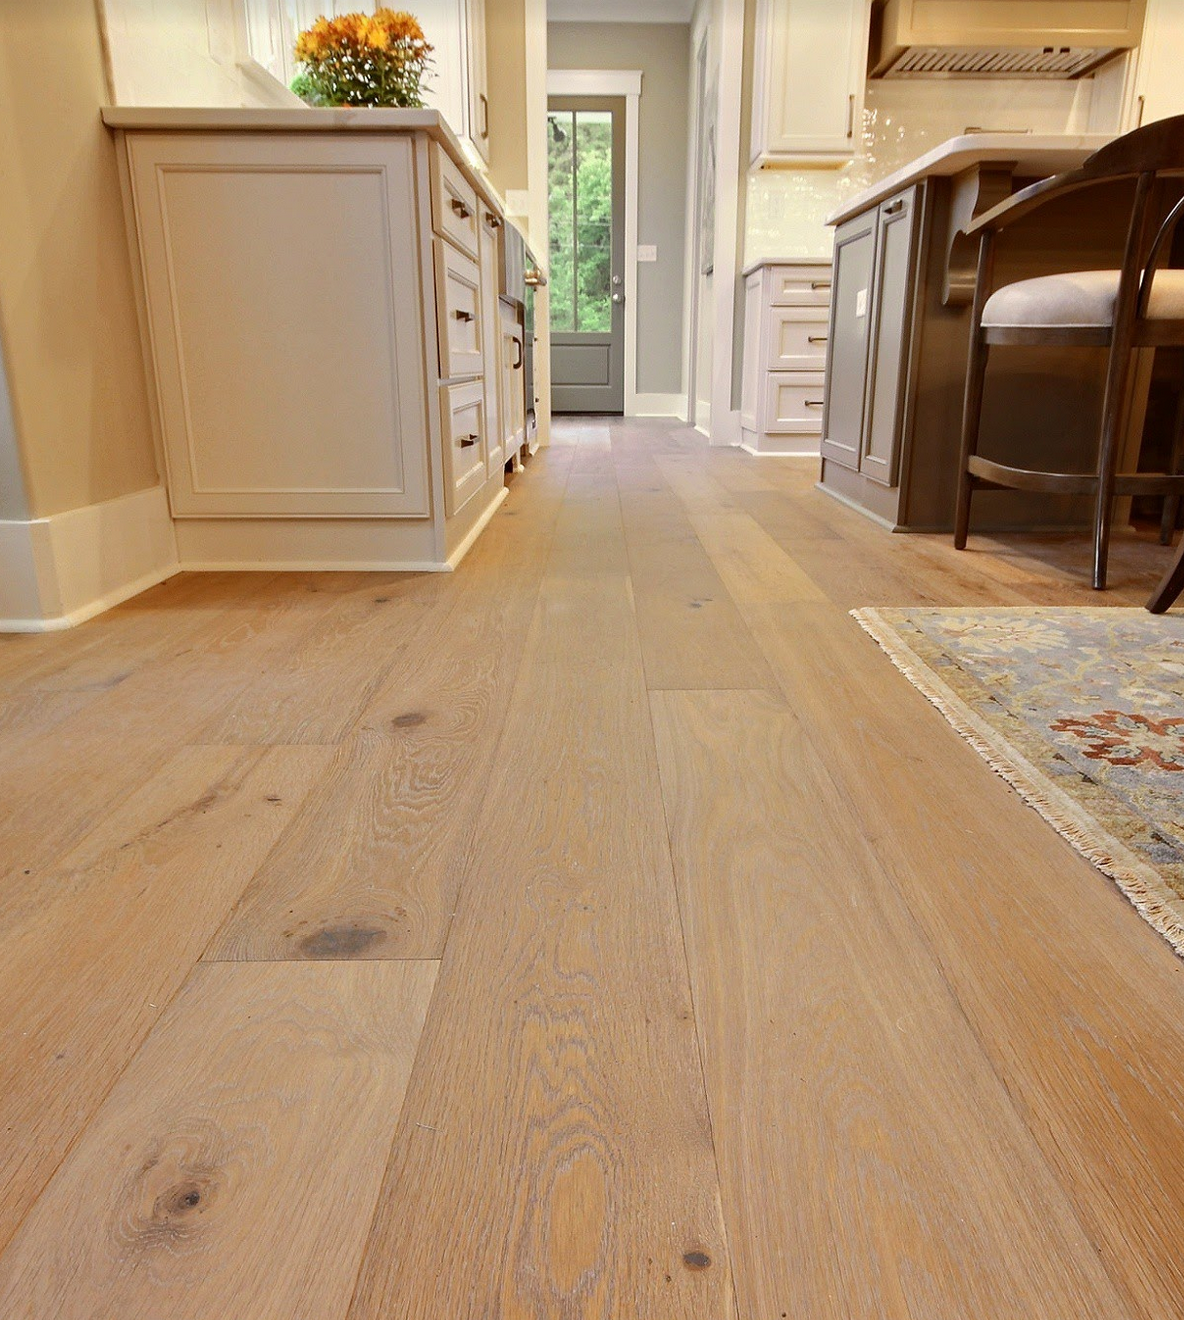 These Beautiful Wide Plank Floors Done By Old World Floors As A Part Of The 2018 Vesta Home Show In 2020 Plank Flooring Flooring Wide Plank Flooring